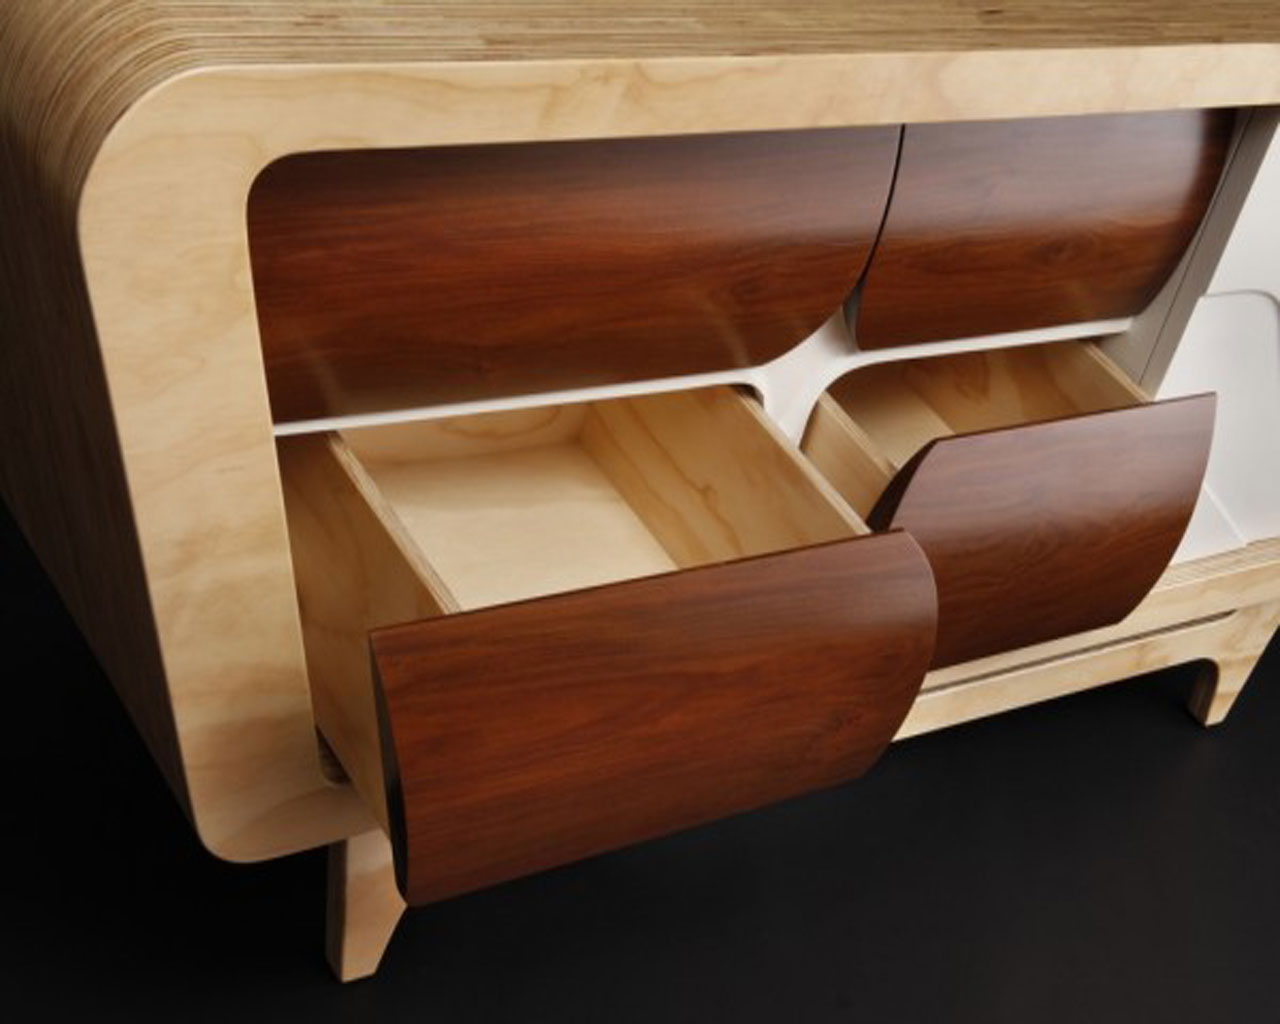 contemporary furniture designs ideas ForModern Furniture Ideas